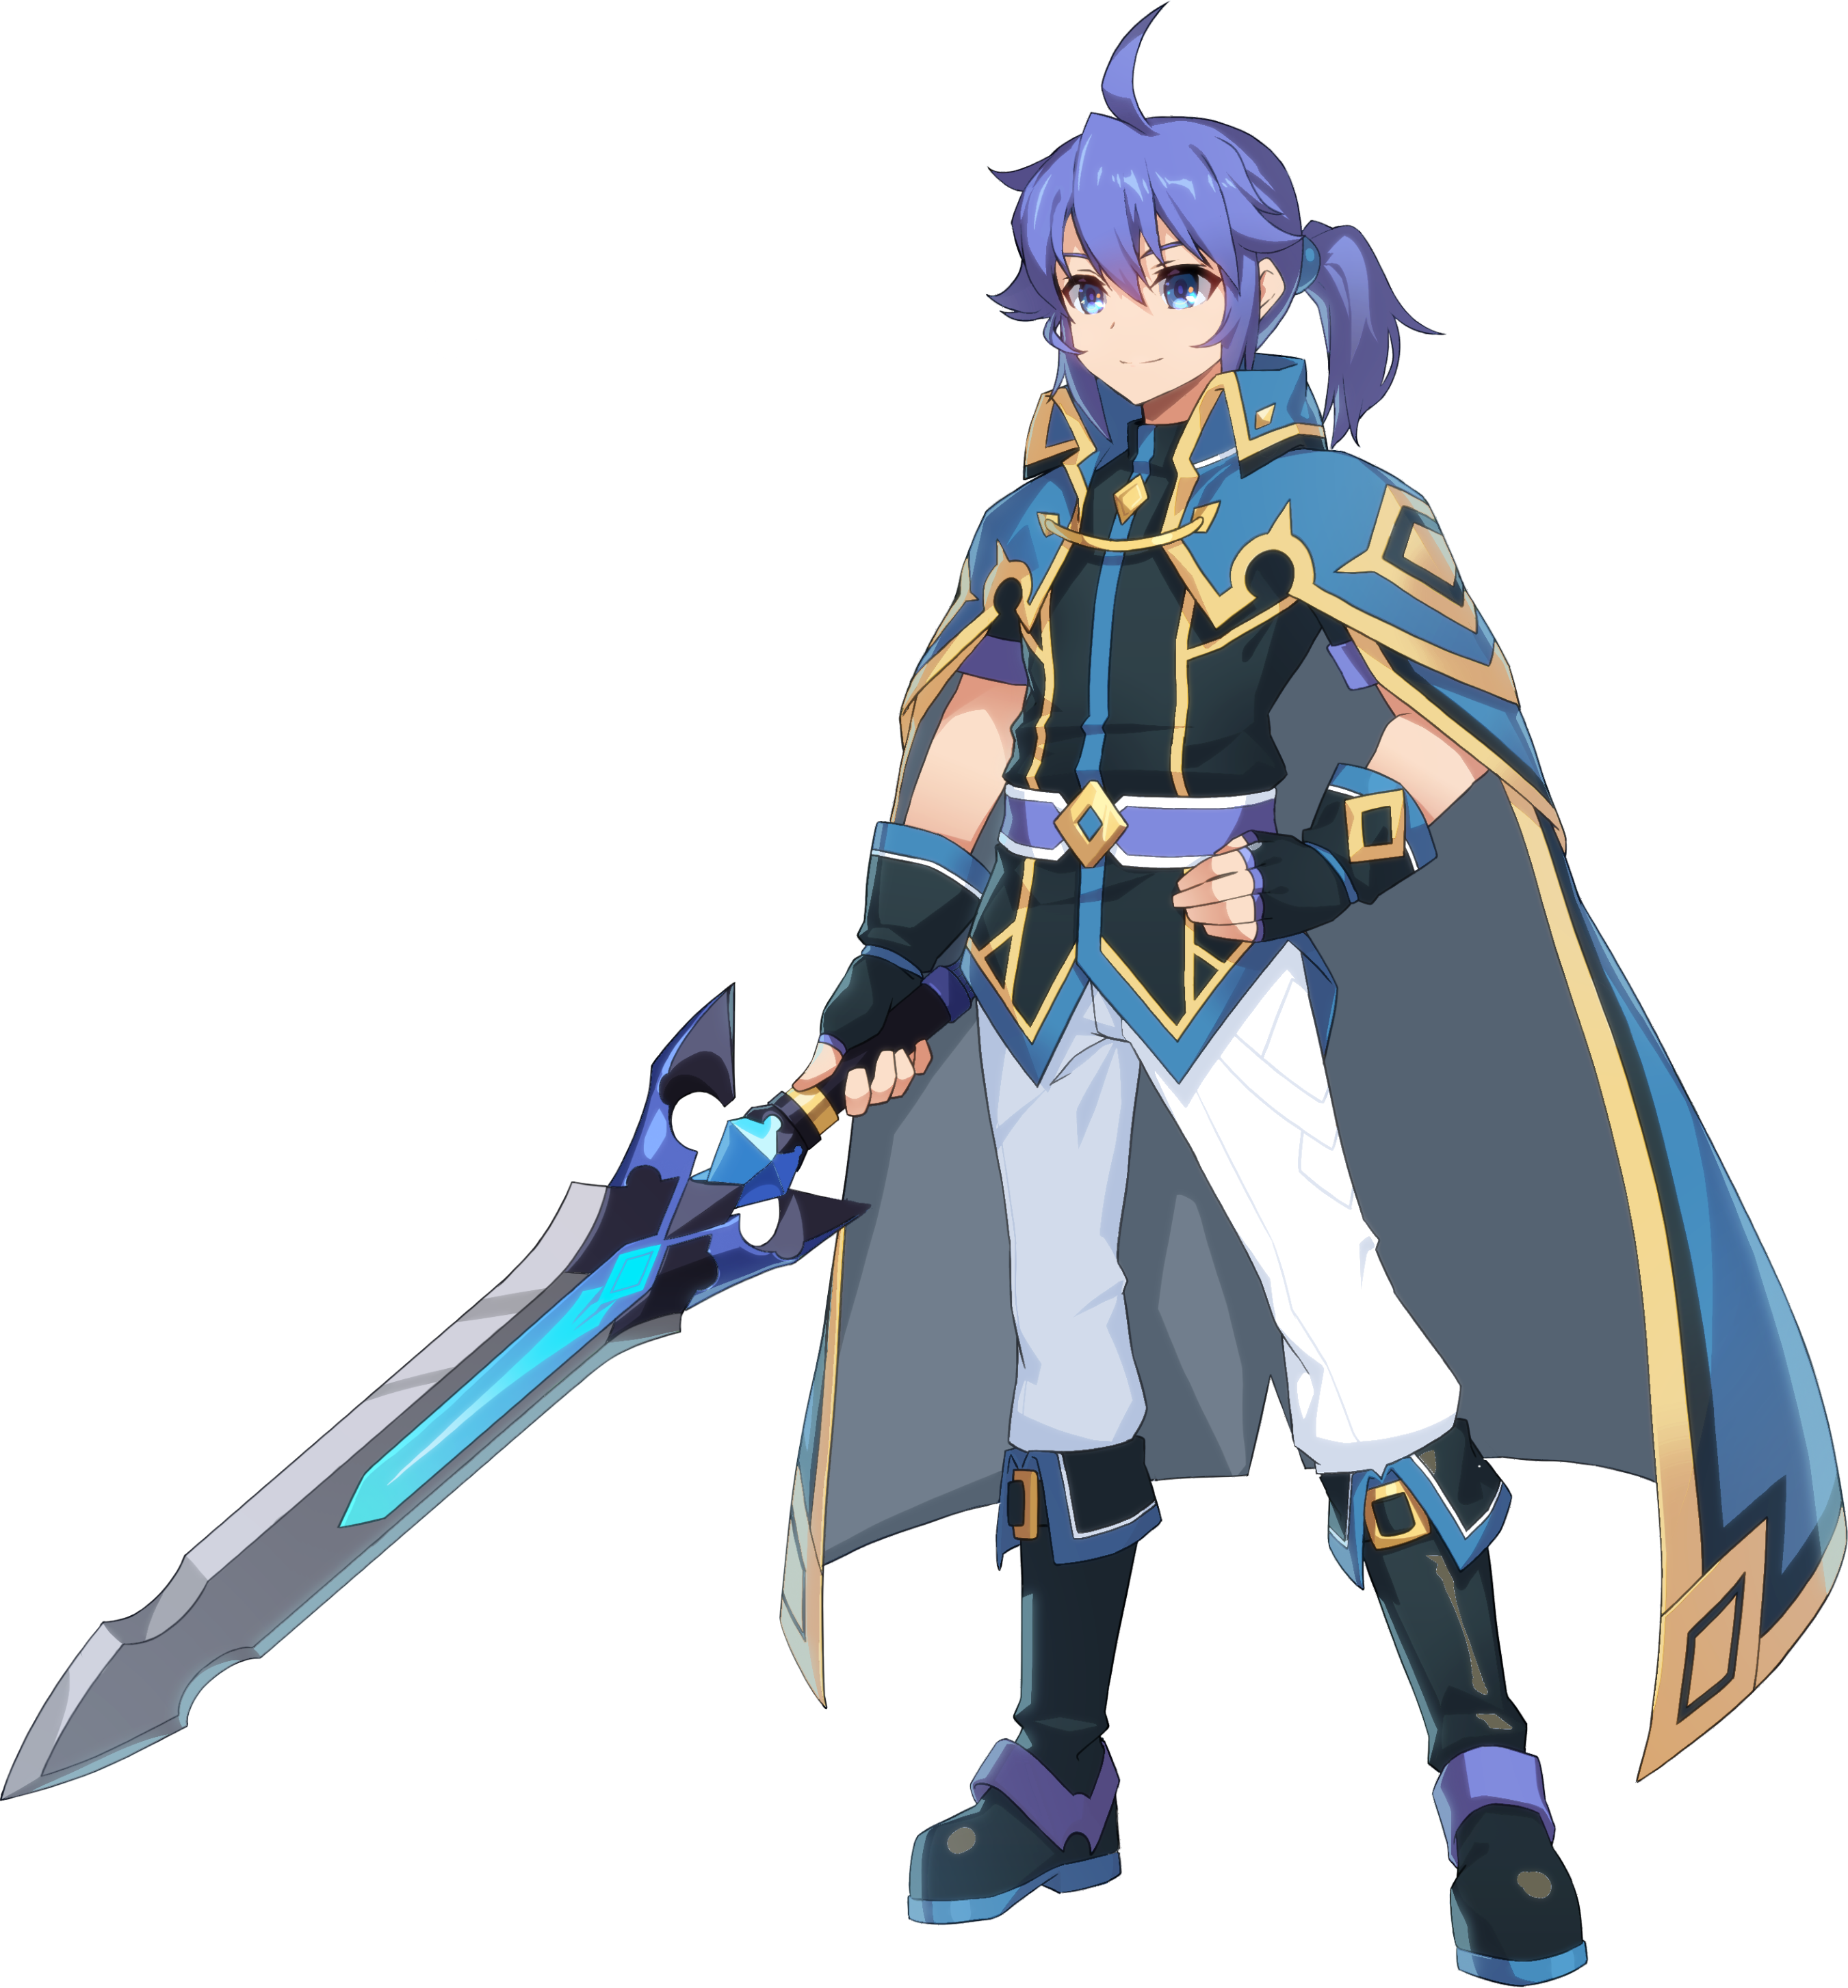 Ronan/Grand Chase Dimensional Chaser | Grand Chase Wiki